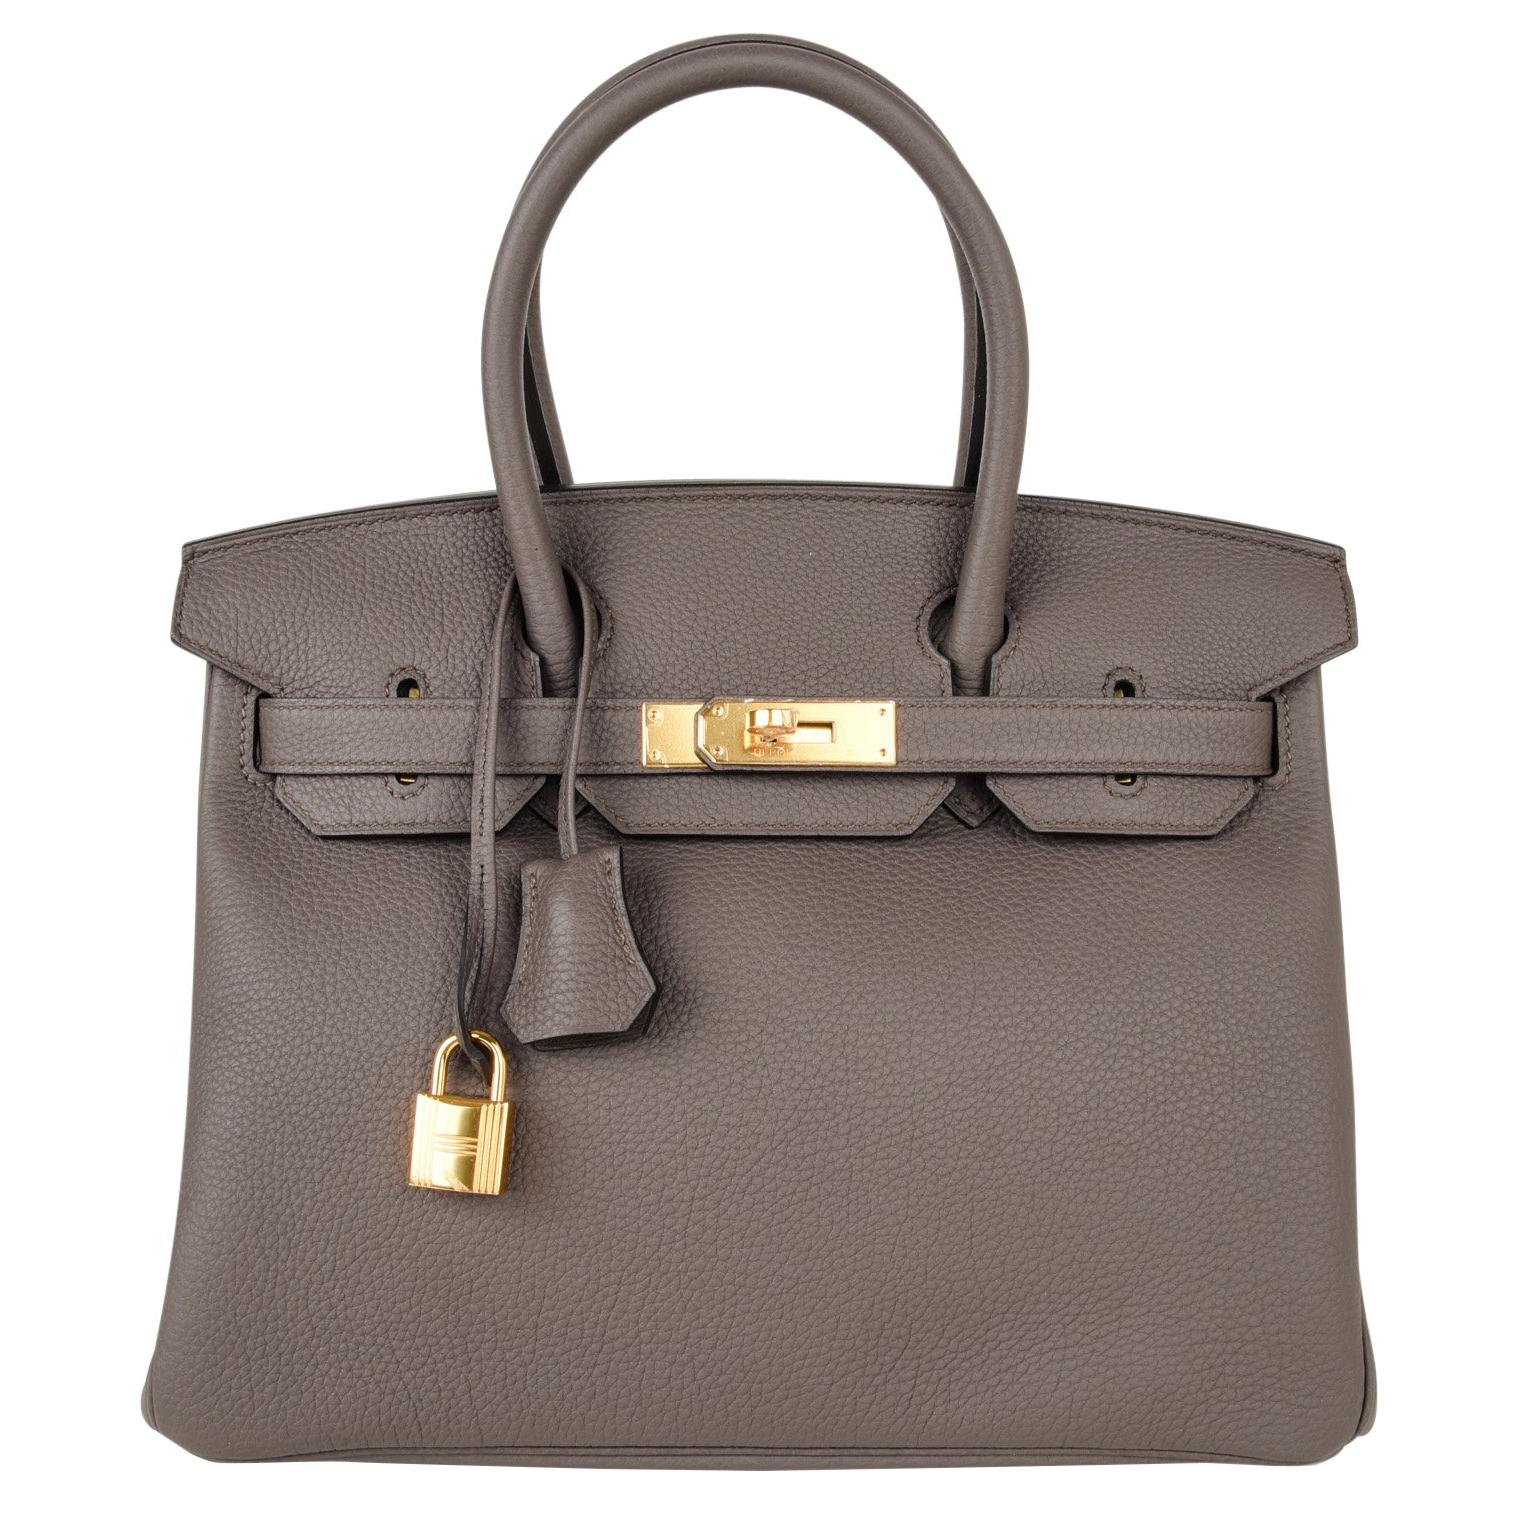 bf3e0f73ade ... where can i buy hermes birkin 30 bag etain gray gold hardware togo  leather for sale